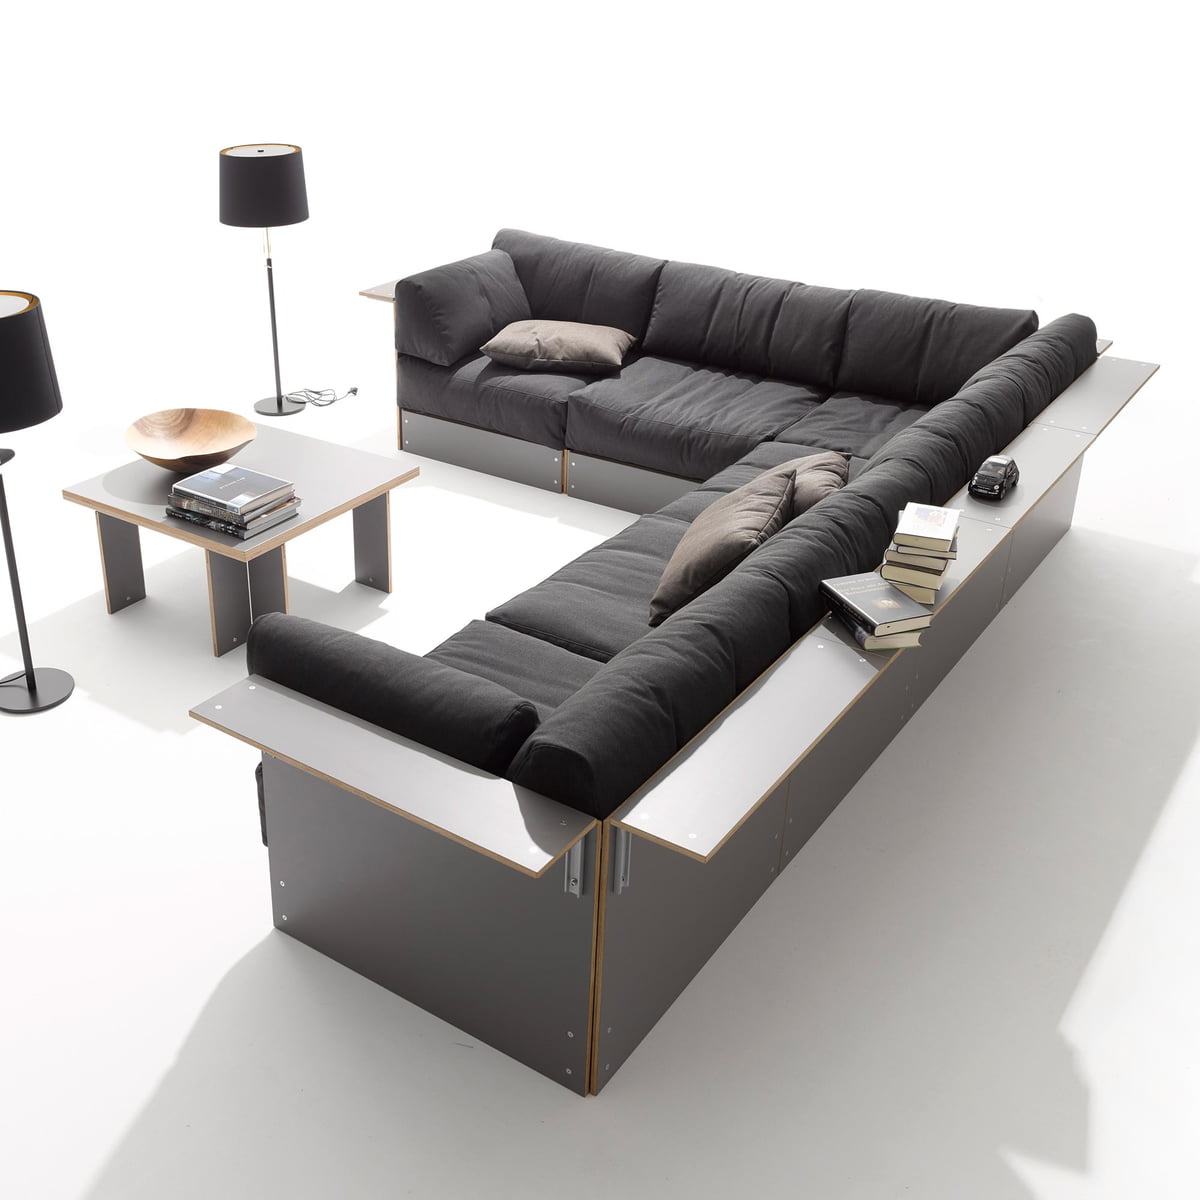 sofabank elements by m ller m belwerkst tten. Black Bedroom Furniture Sets. Home Design Ideas